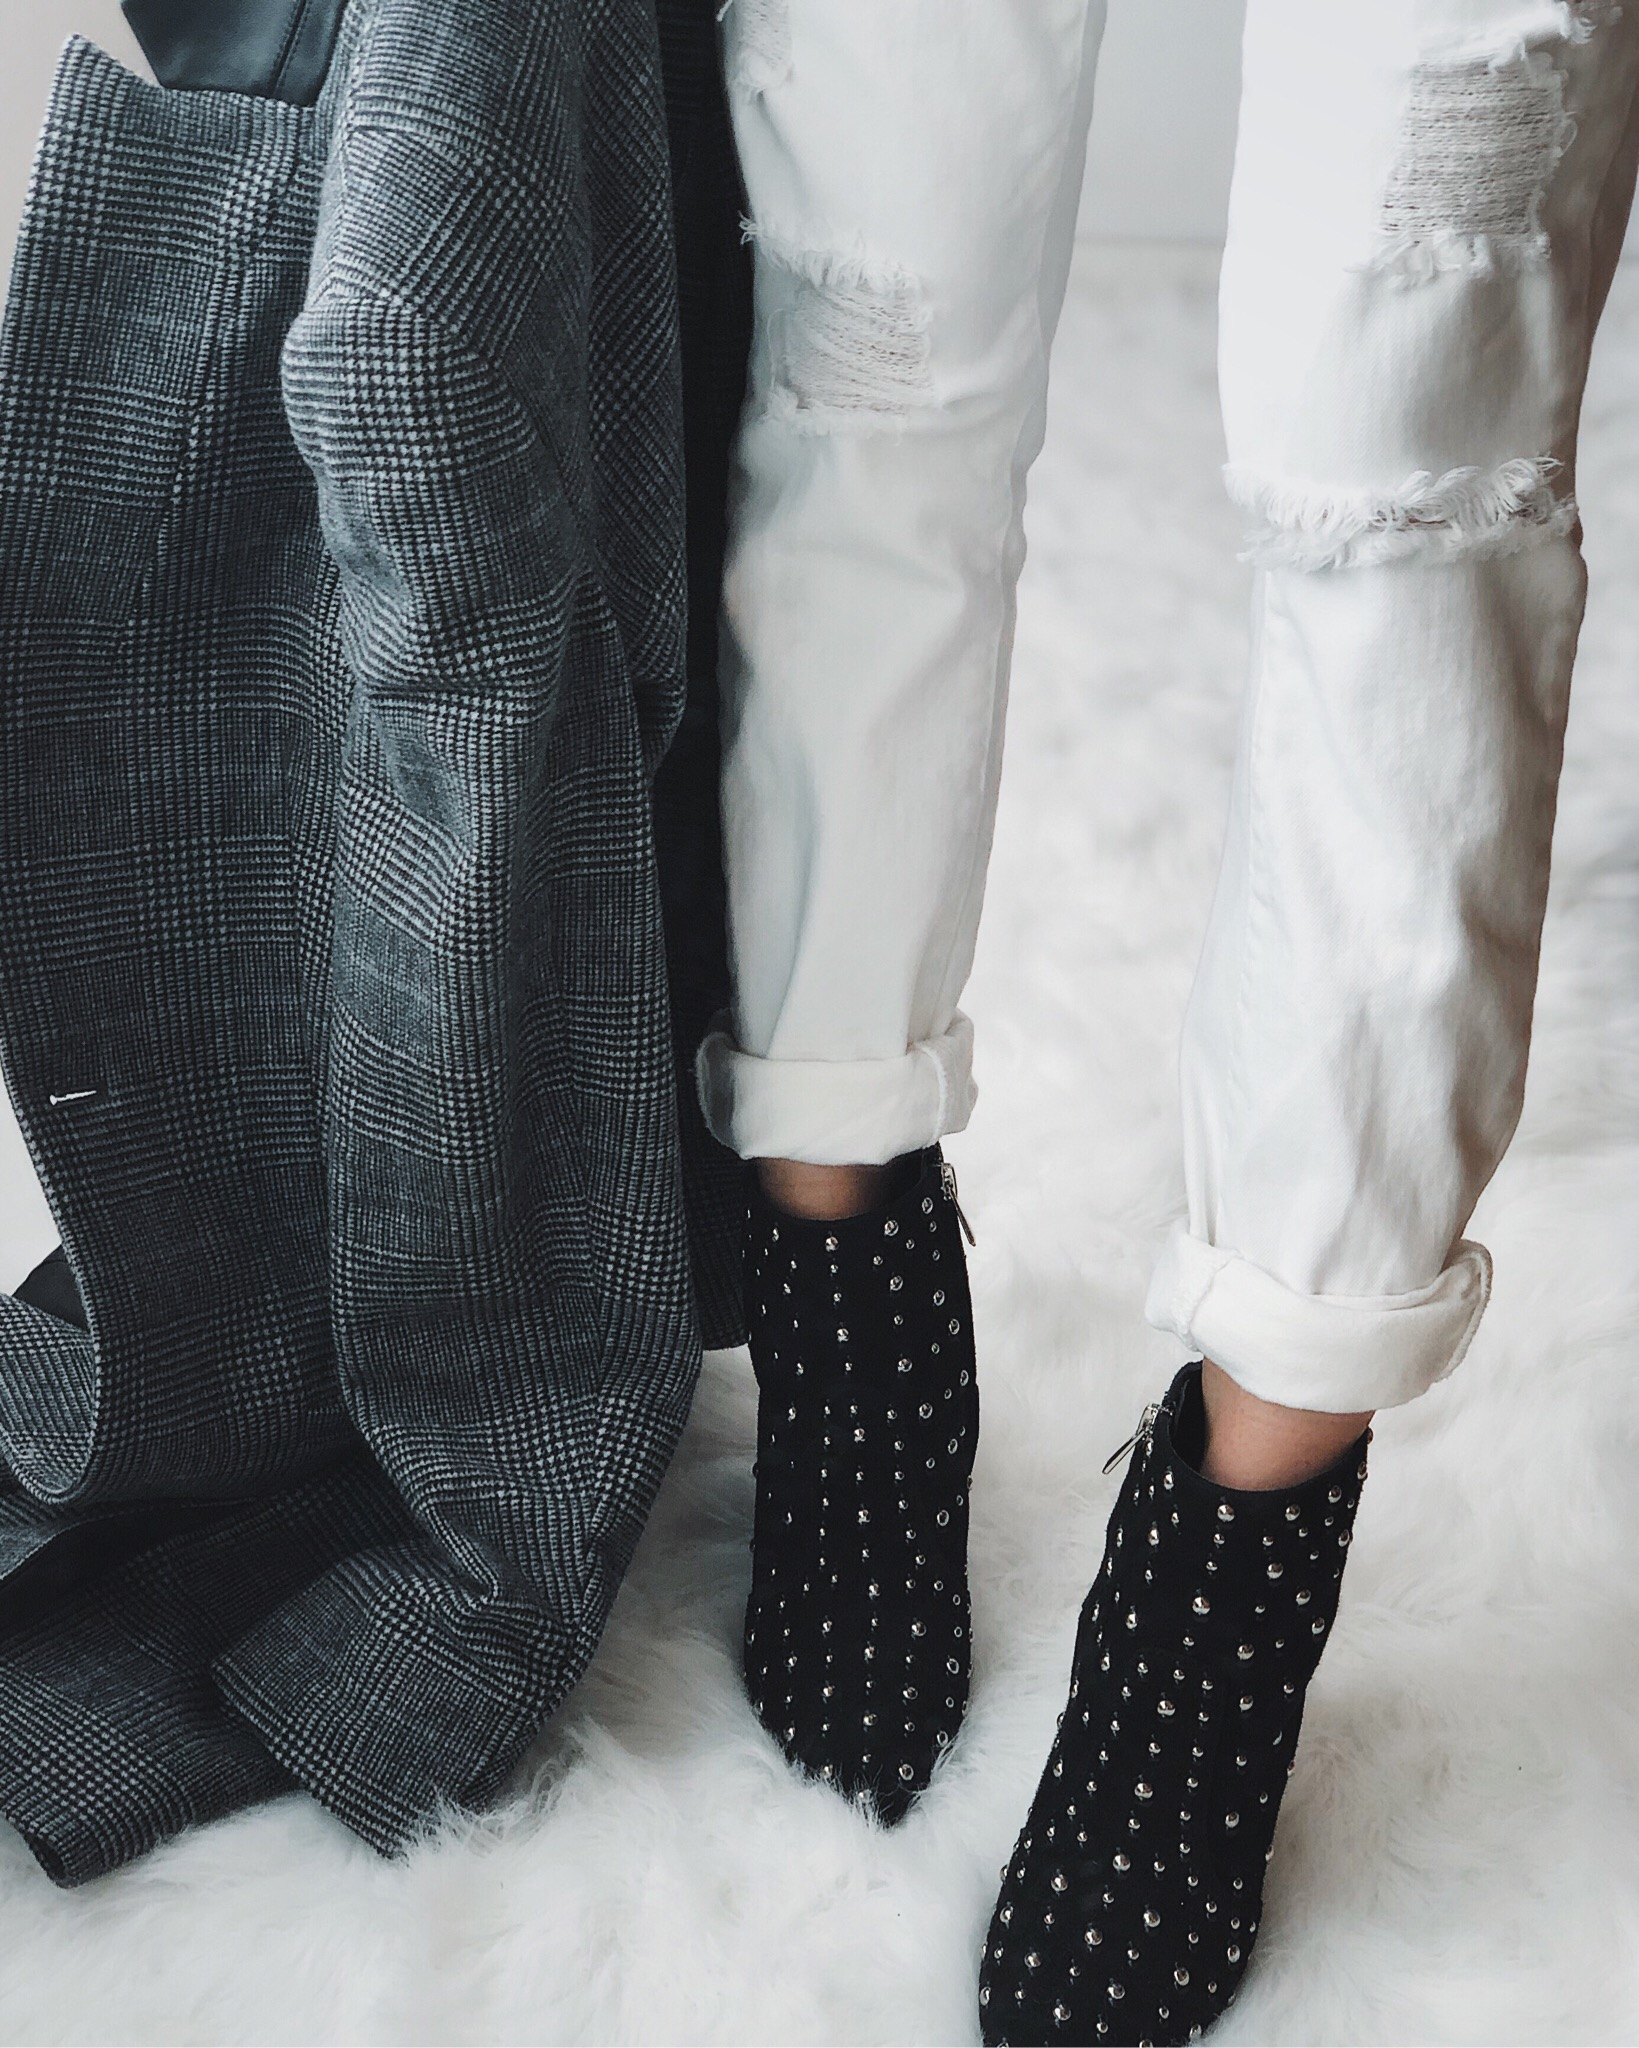 studded ankle booties, plaid coat, boyfriend jeans